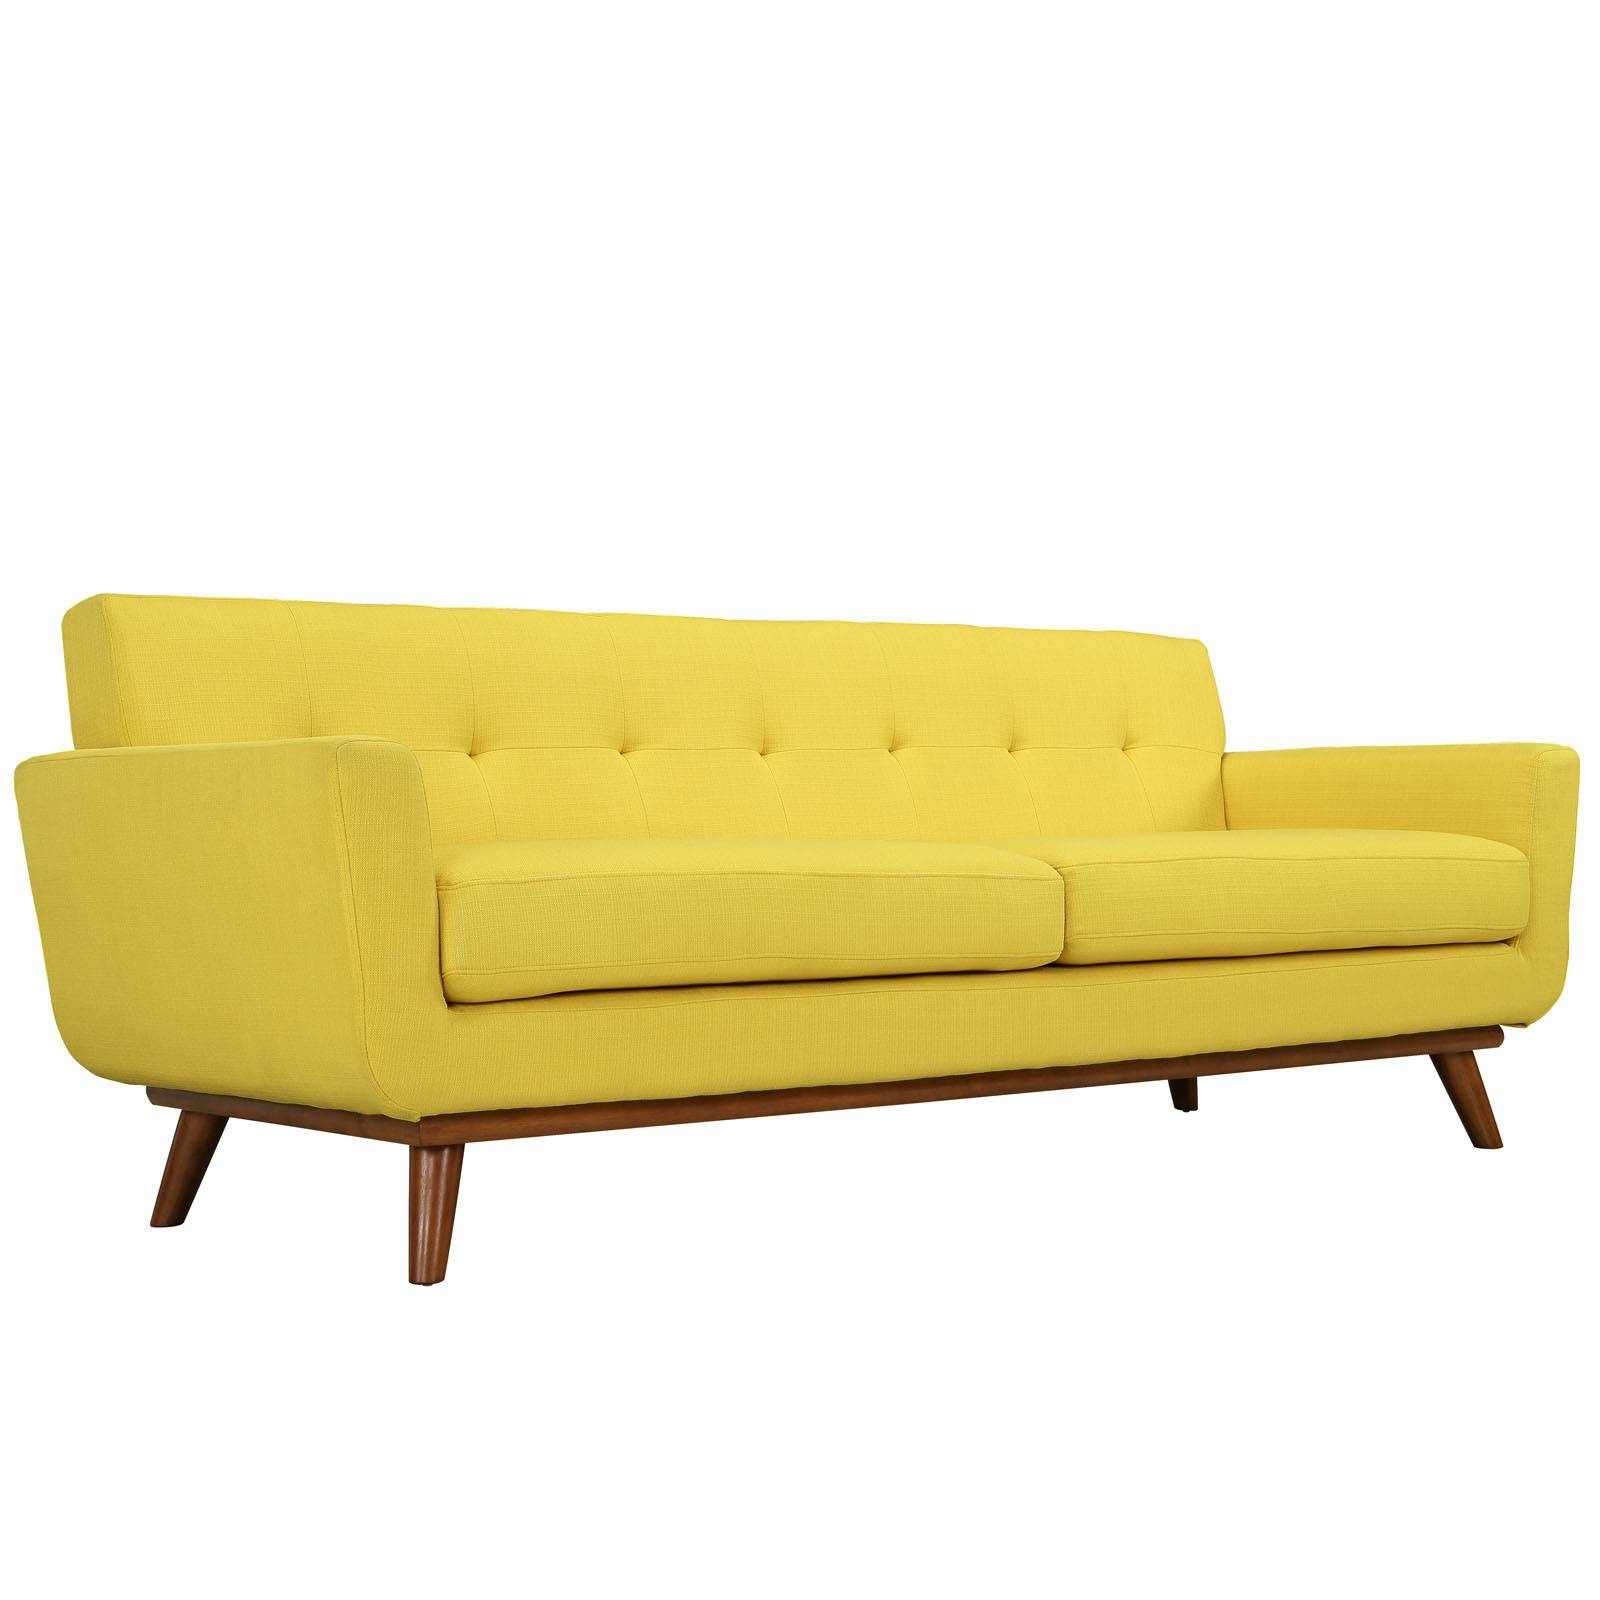 Furniture Rental, Event Furniture Rental, Party Furniture Rental throughout Yellow Sofa Chairs (Image 14 of 30)